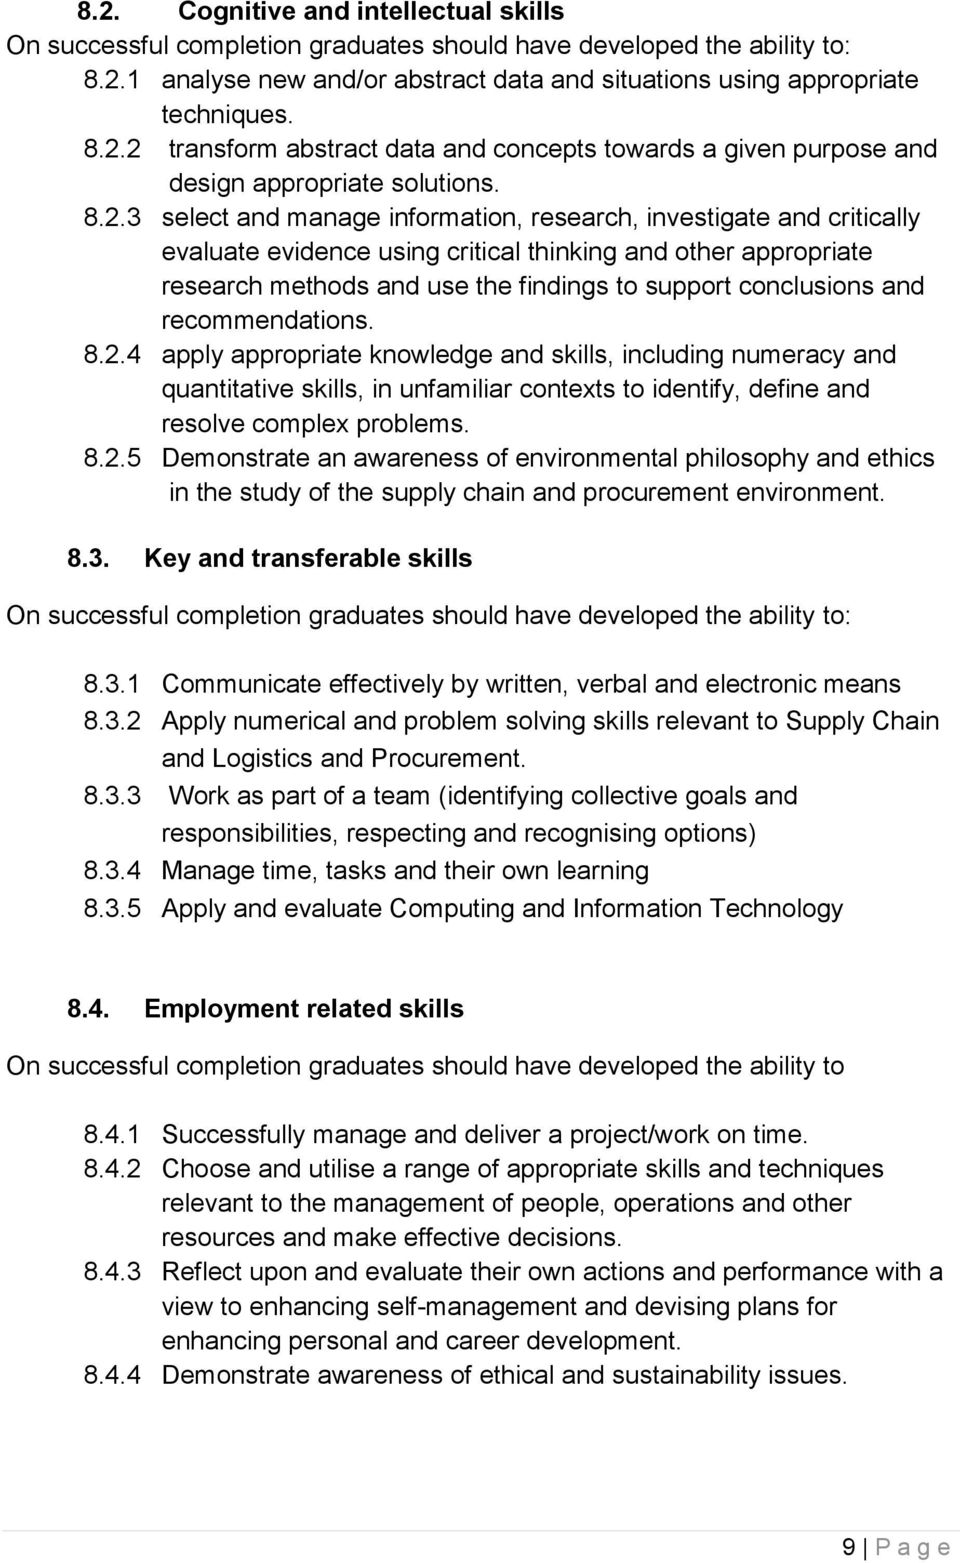 and recommendations. 8.2.4 apply appropriate knowledge and skills, including numeracy and quantitative skills, in unfamiliar contexts to identify, define and resolve complex problems. 8.2.5 Demonstrate an awareness of environmental philosophy and ethics in the study of the supply chain and procurement environment.